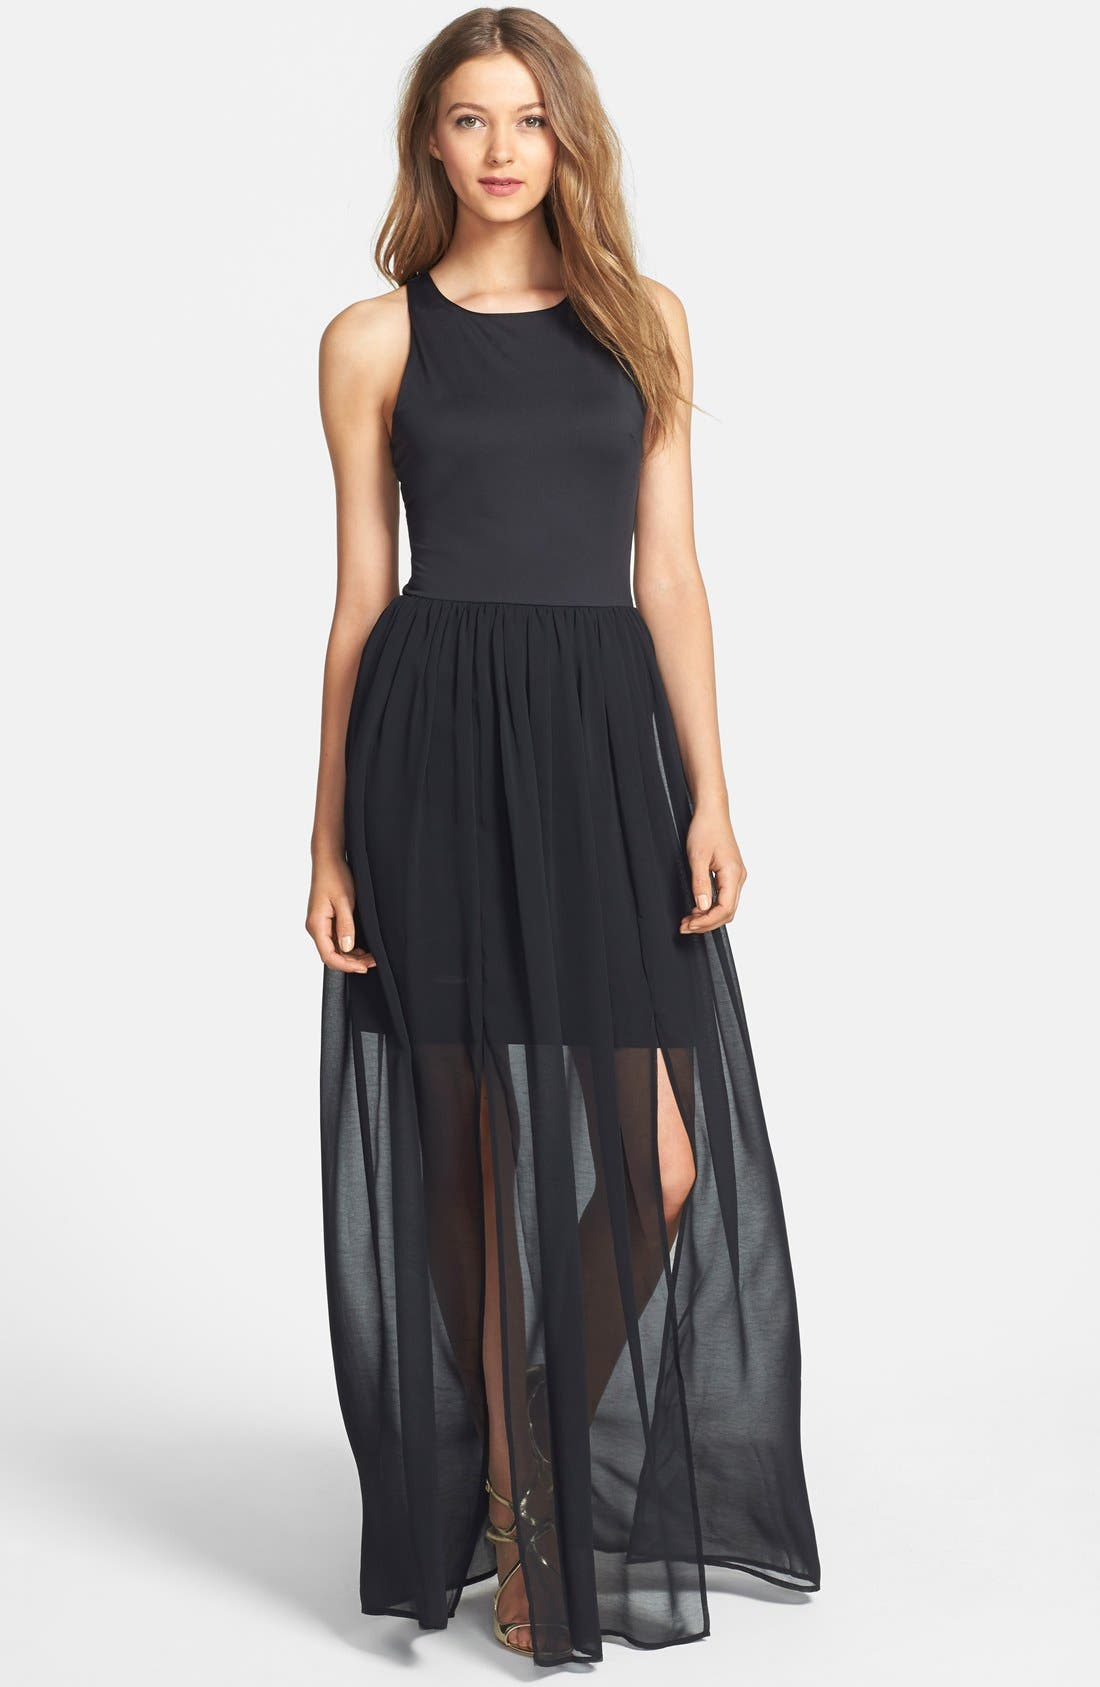 Alternate Image 1 Selected - Felicity & Coco Chiffon Overlay Sleeveless Jersey Dress (Nordstrom Exclusive)